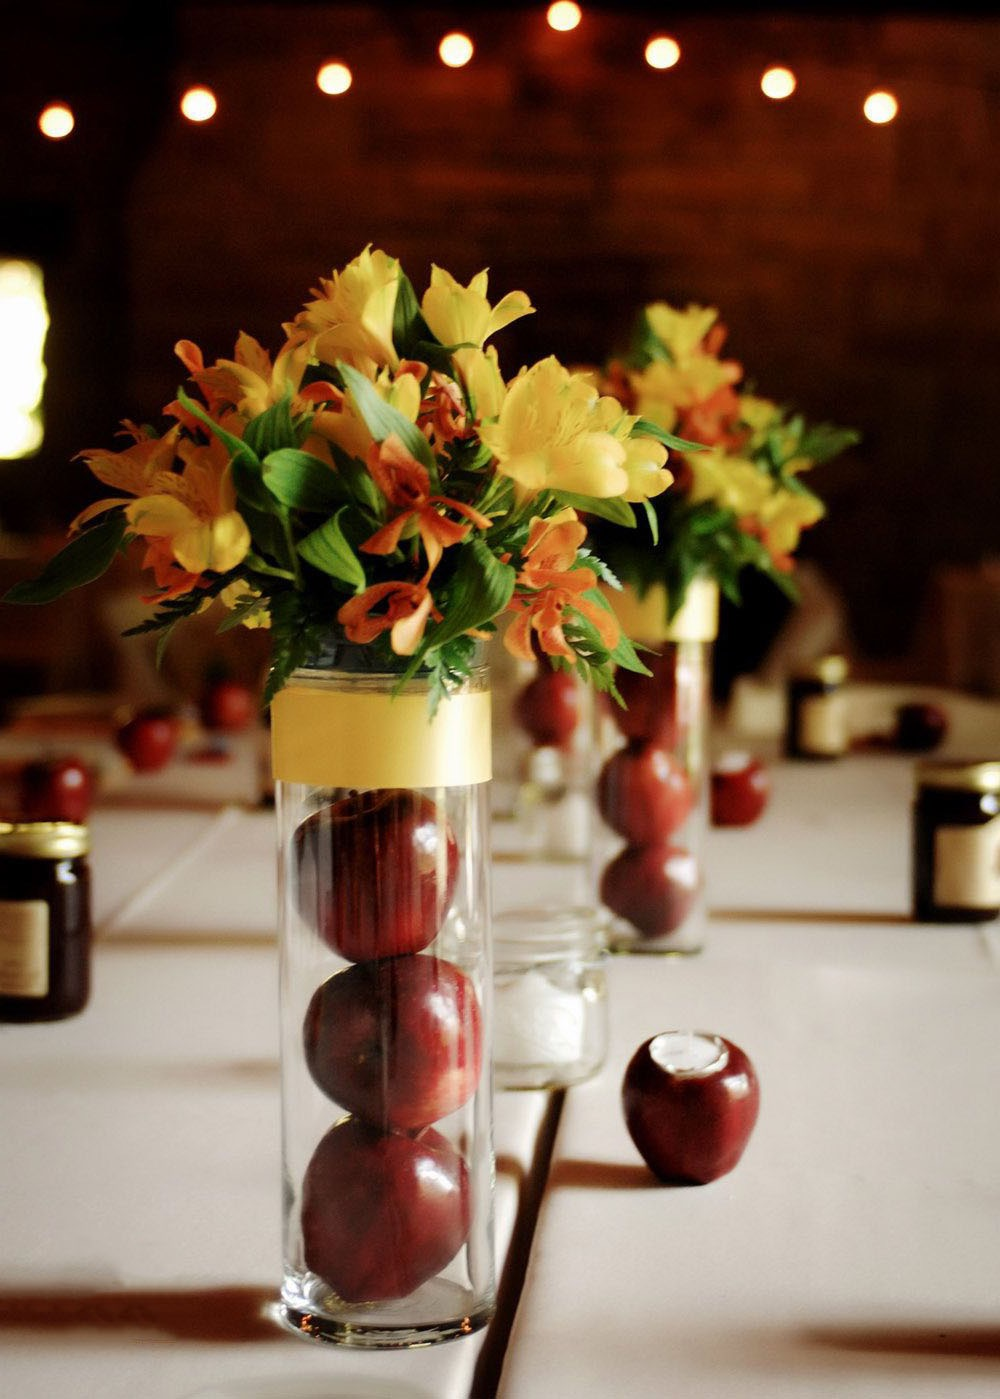 Glass Vases Filled With Apples Centerpiece With Paper Flower For Wedding Table (Image 19 of 35)